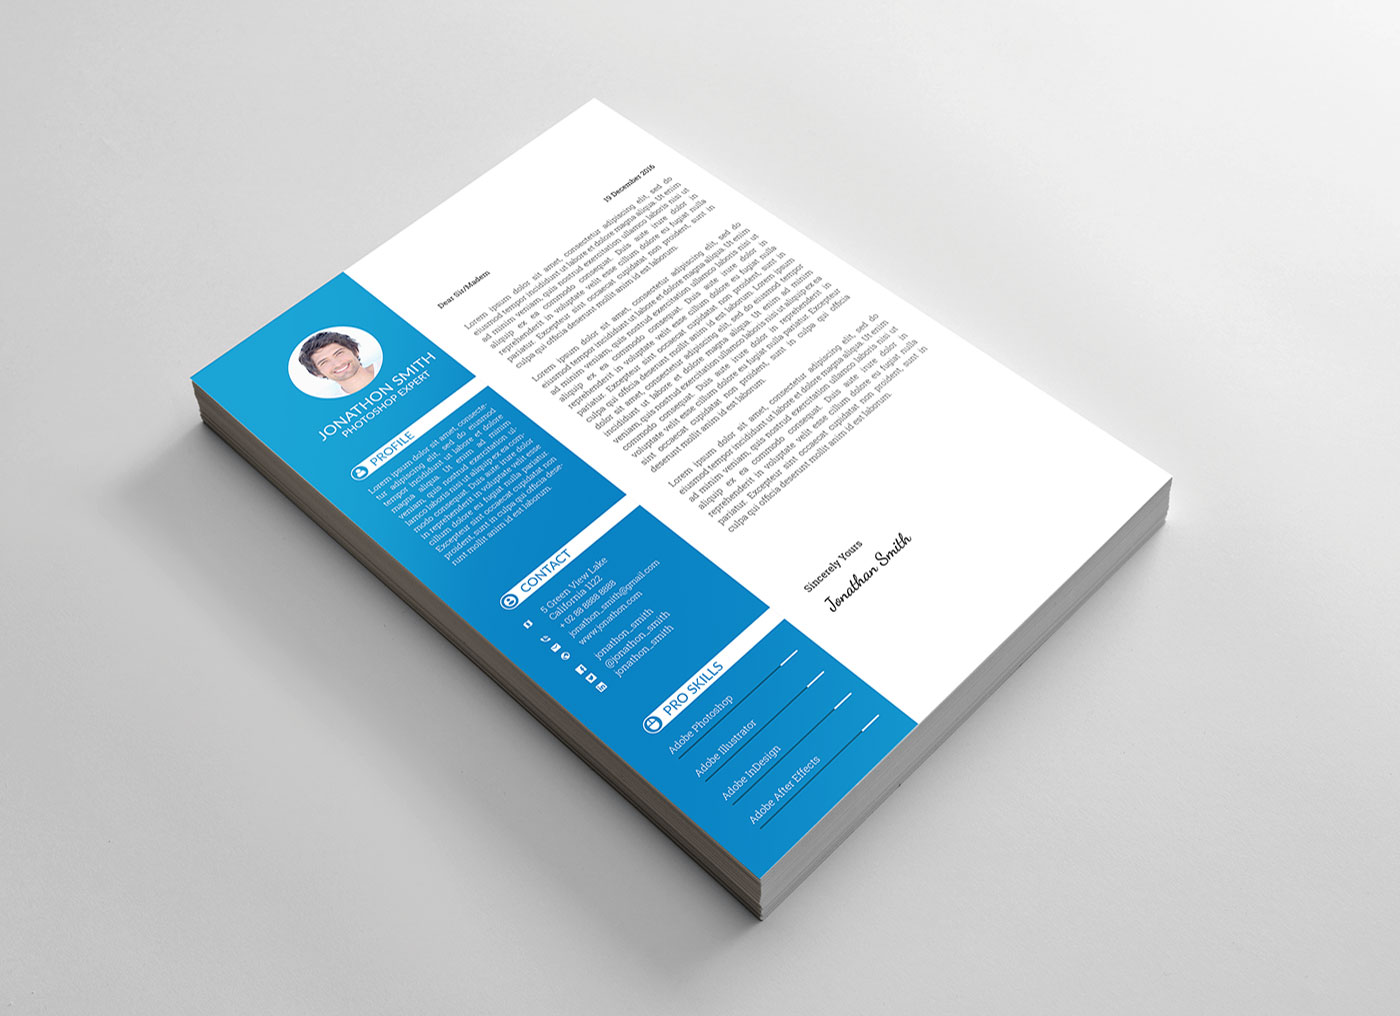 Free-PSD-Resume-CV-&-Cover-Letter-Template-for-UI-and-UX-Designer (3)